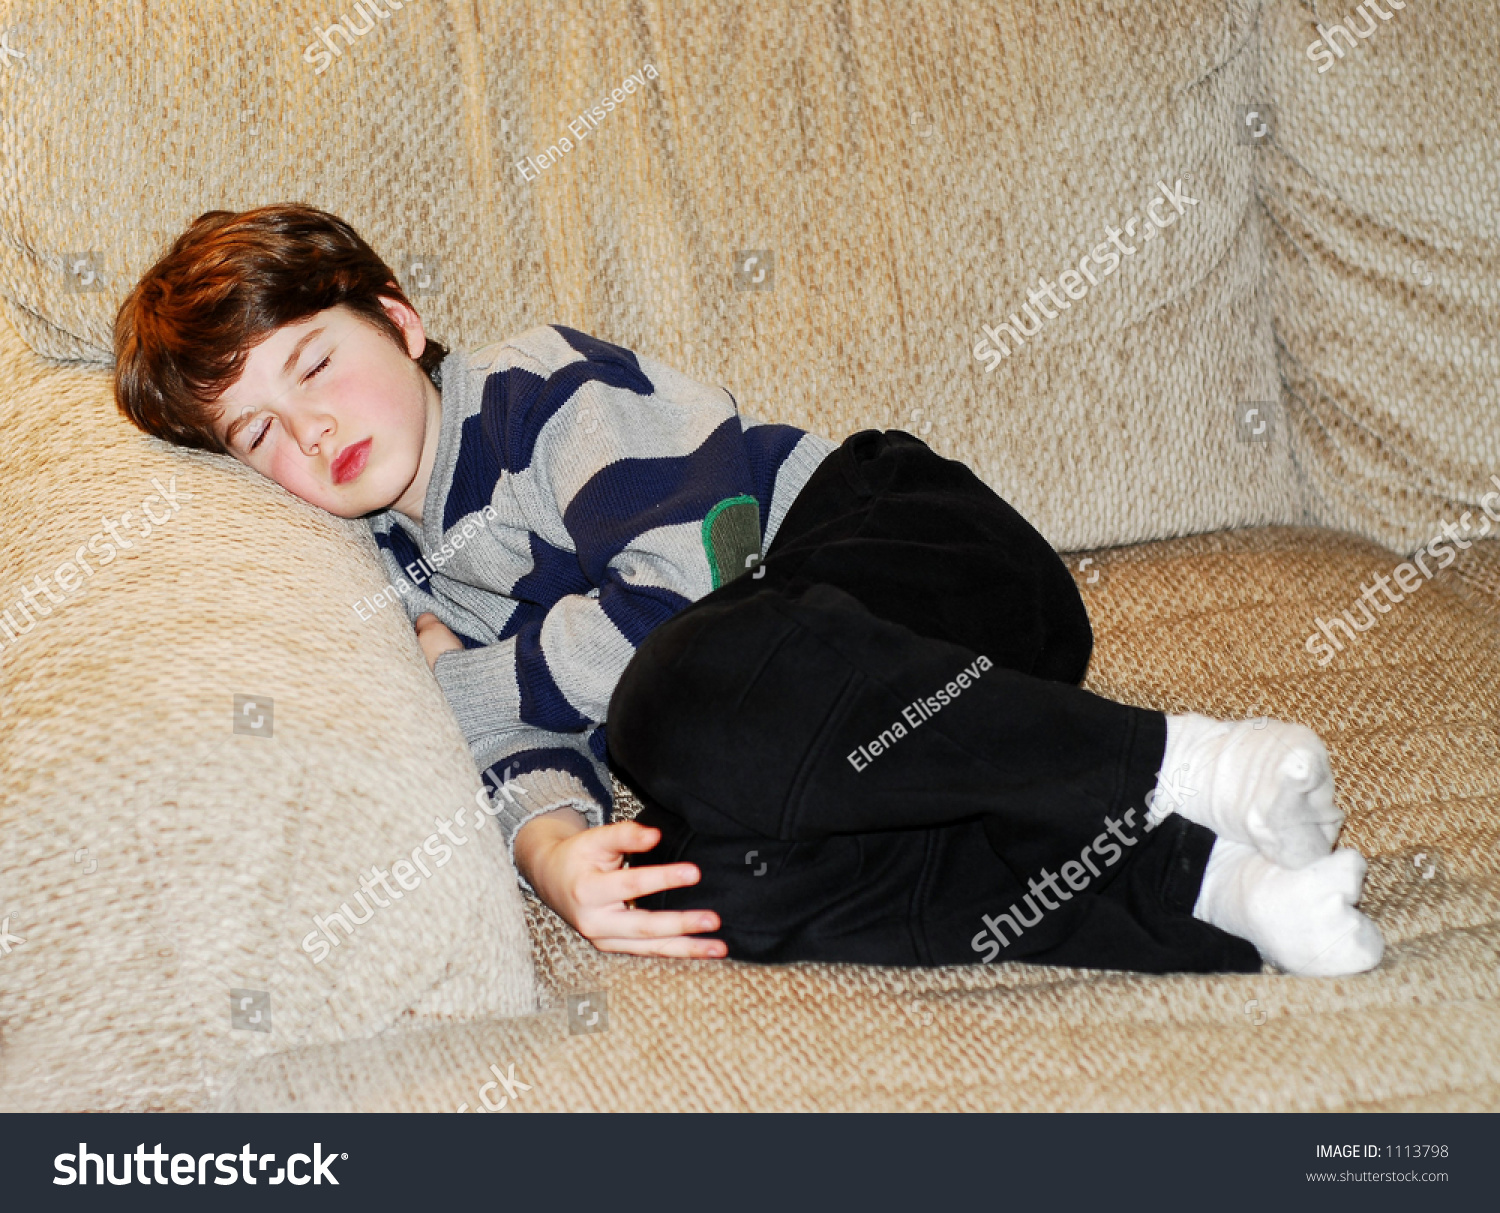 Cute little boy sleeping on a couch stock photo 1113798 for Couch you can sleep on